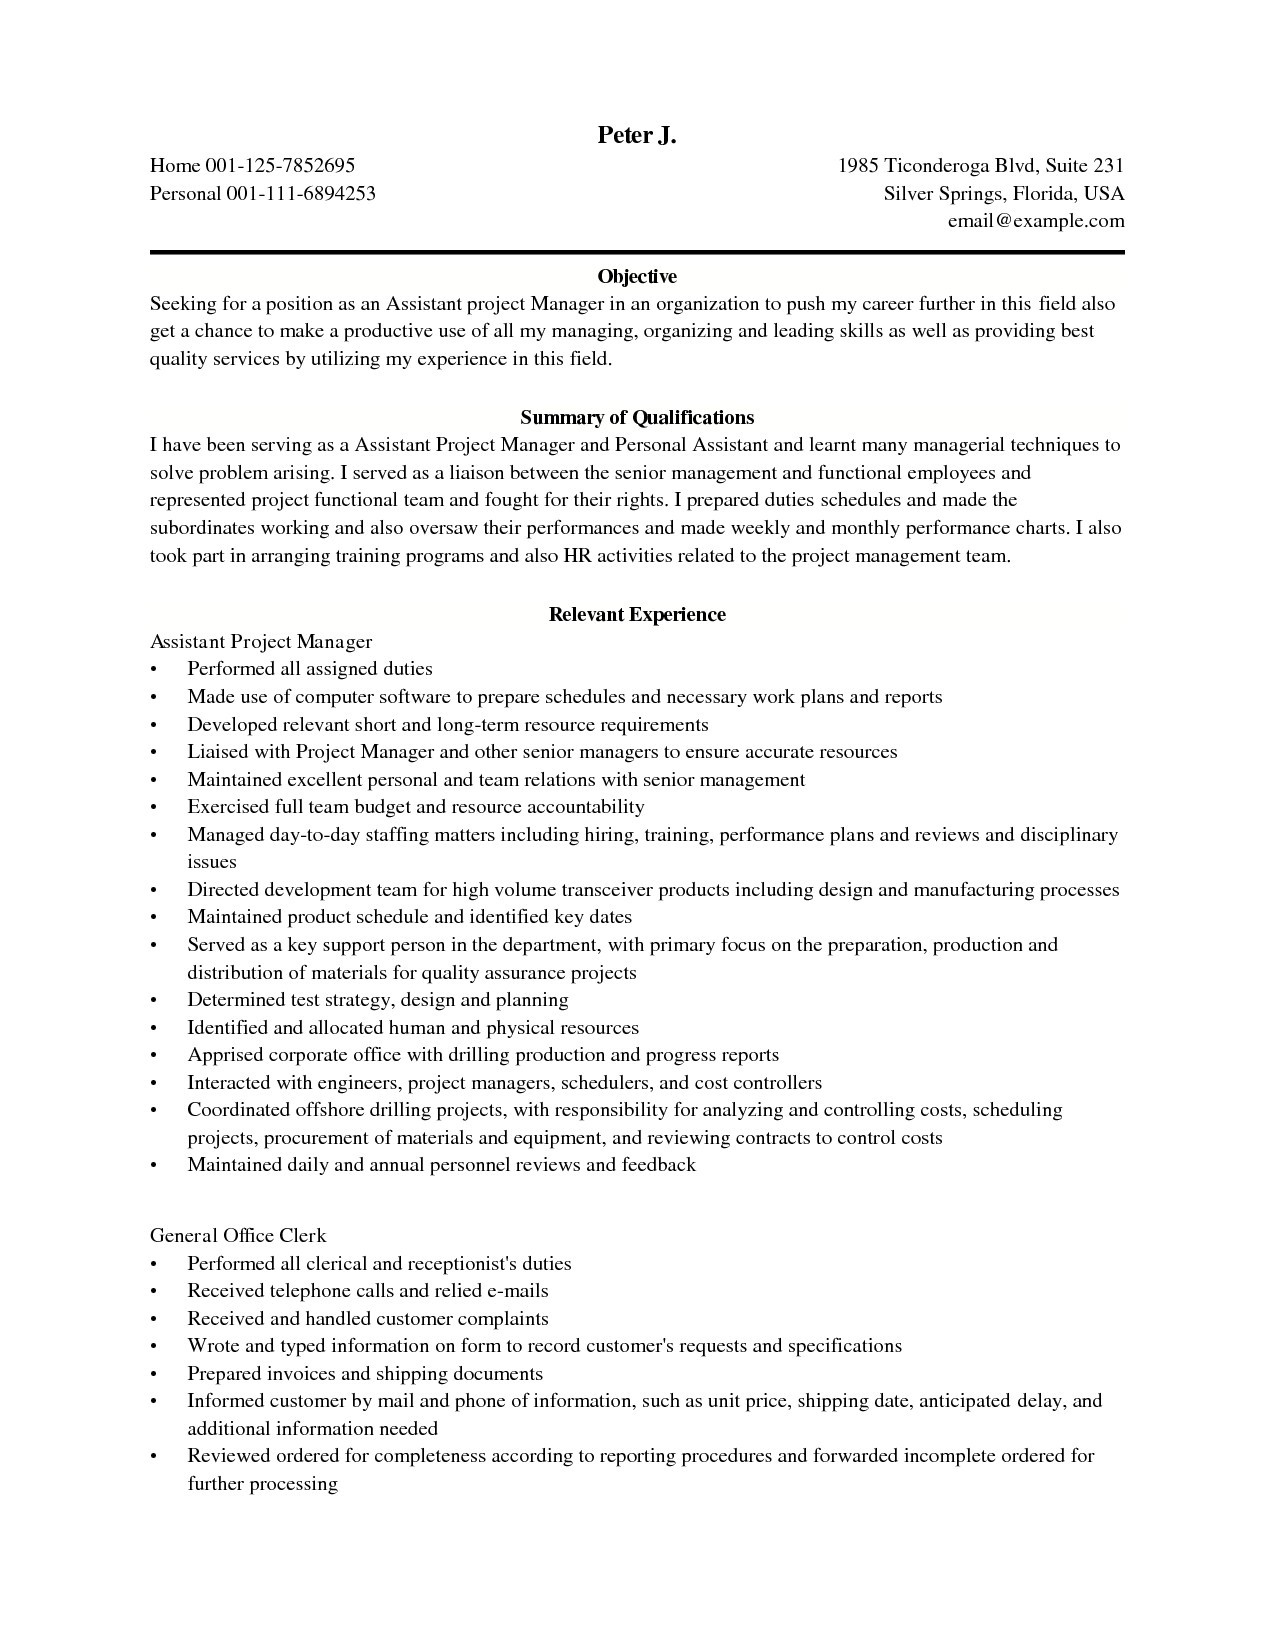 Restaurant Resume Skills - Awesome Elegant Grapher Resume Sample Beautiful Resume Quotes 0d